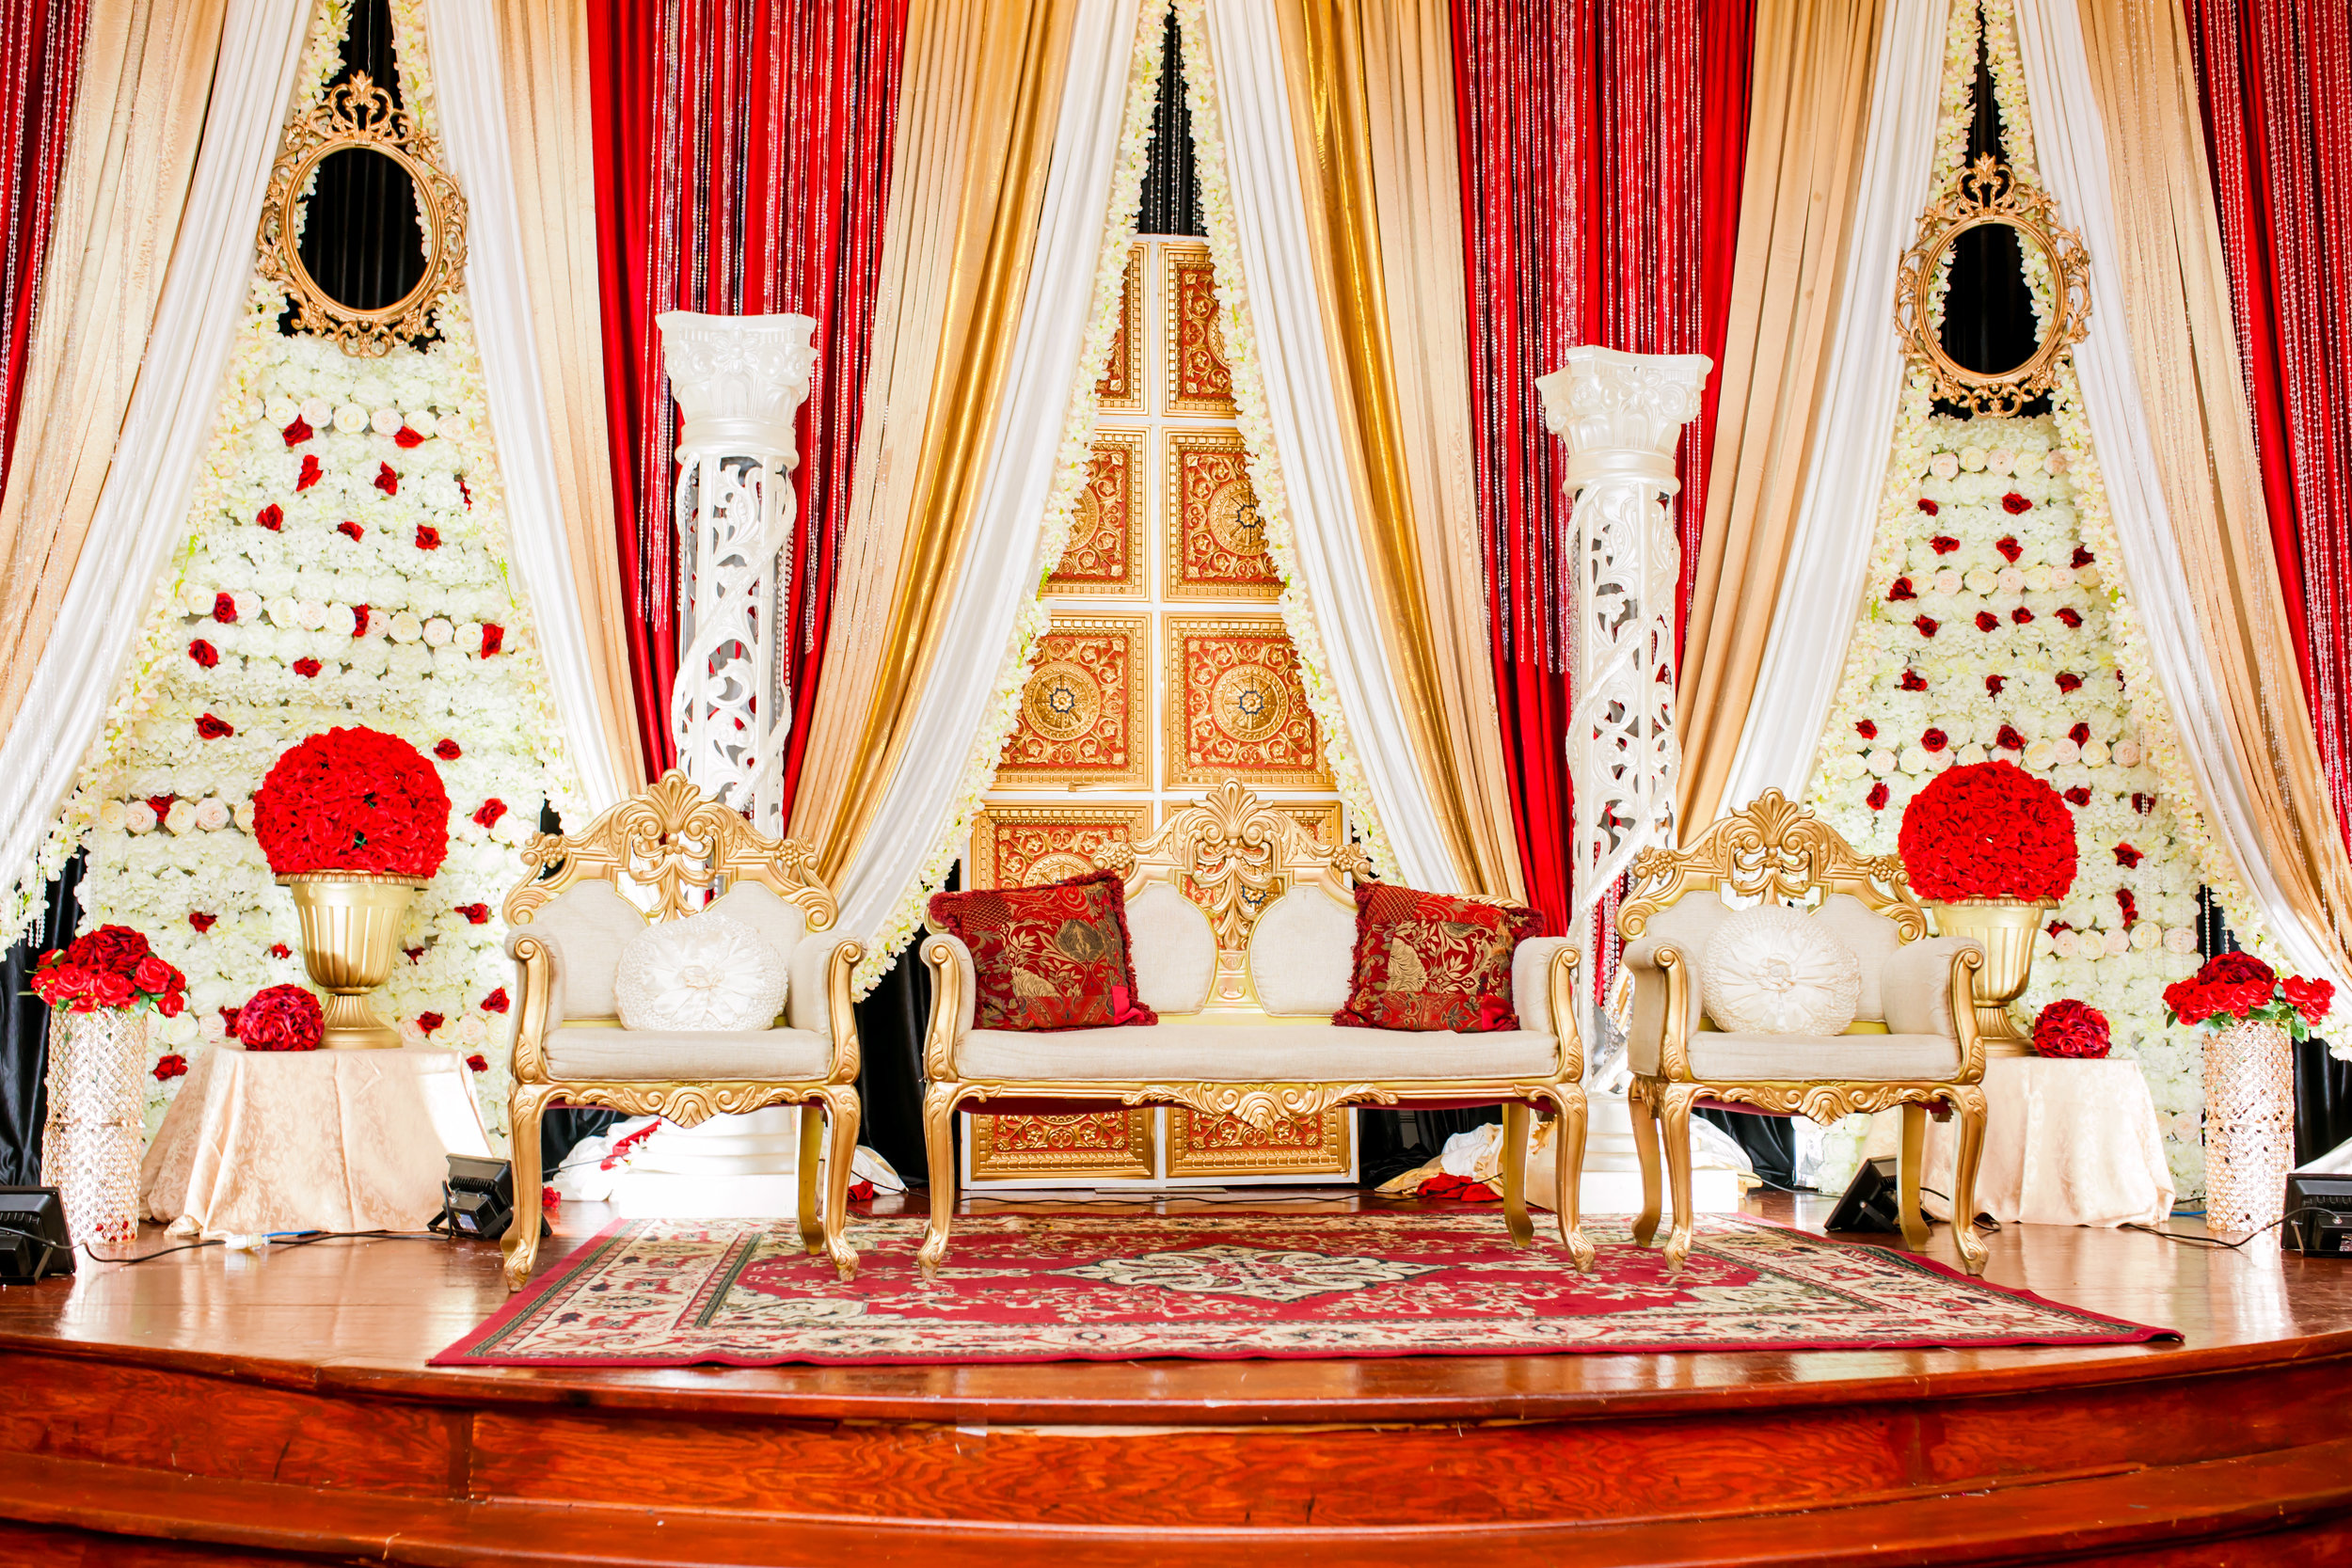 Brampton Wedding Photographer Toronto Indian Mississauga Pakistani Red Decor Decor company styled shoot inspiration Lavish Dulhan South Asian Brides Nikkah Chandni Grand